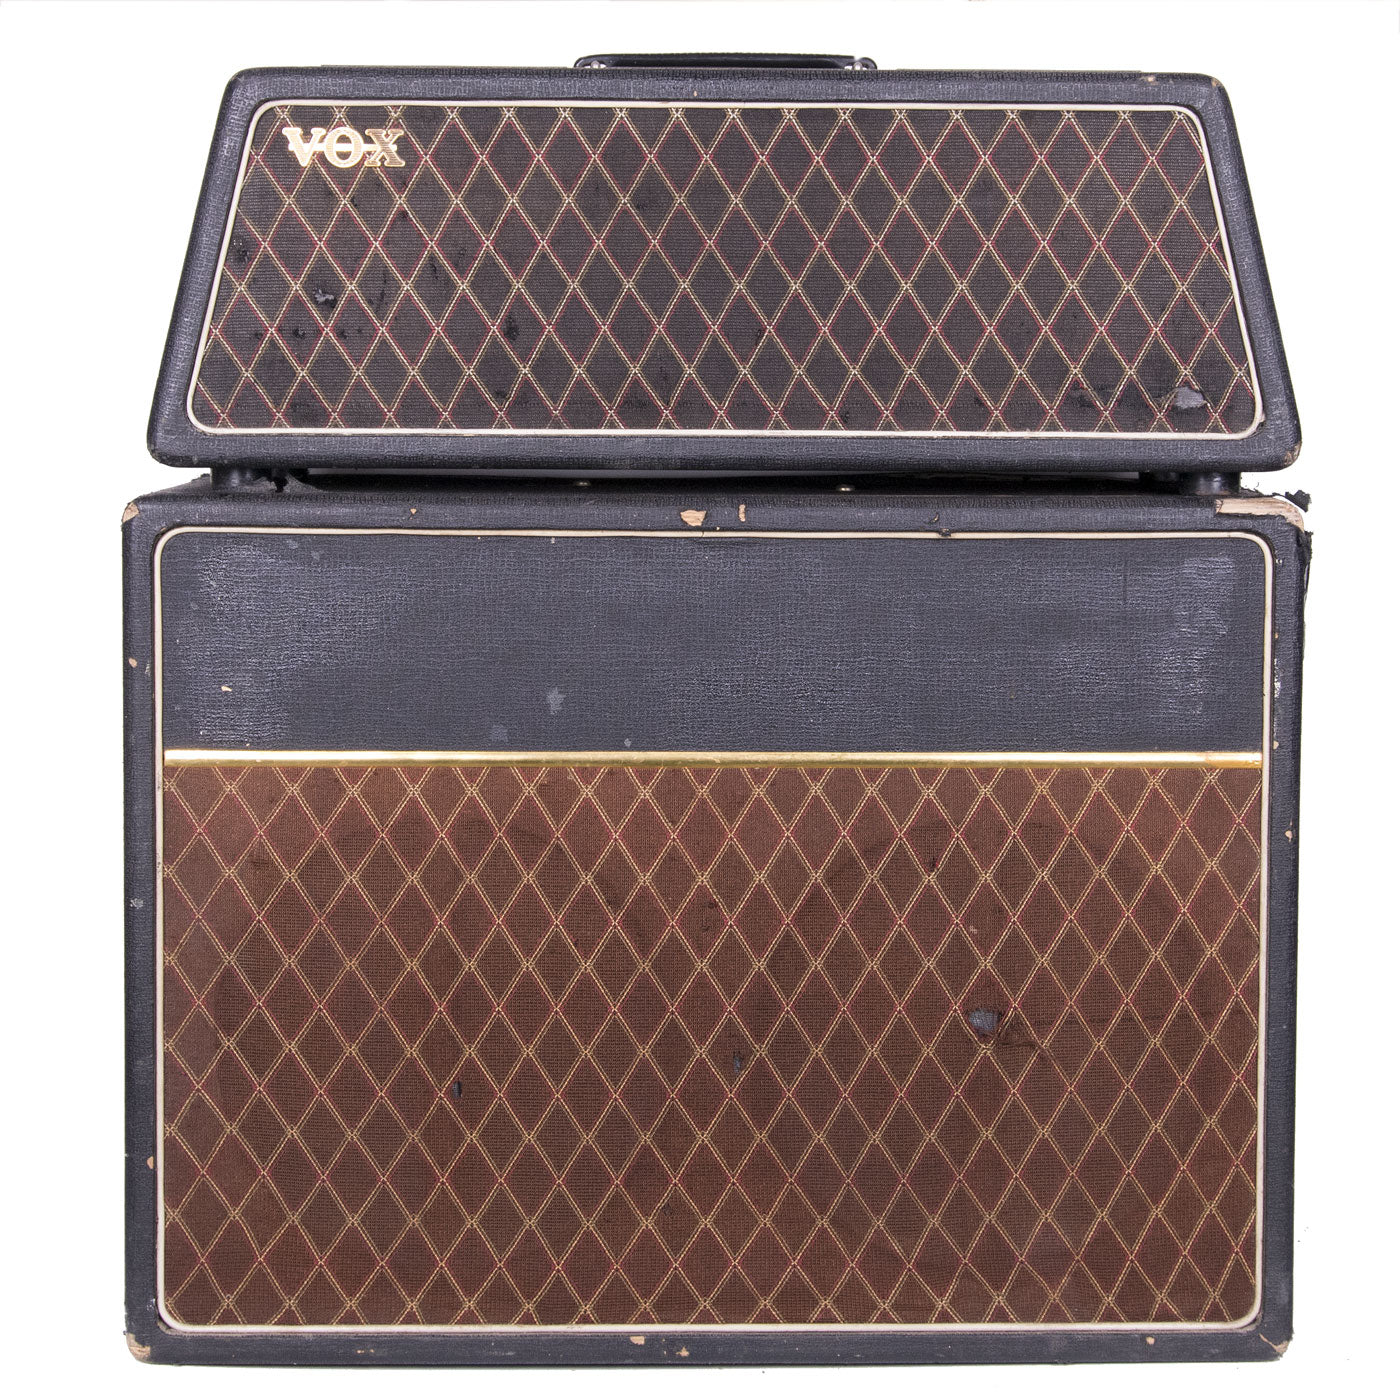 1964/65 AC30 Super Twin Head & 1964 2x12 Cab